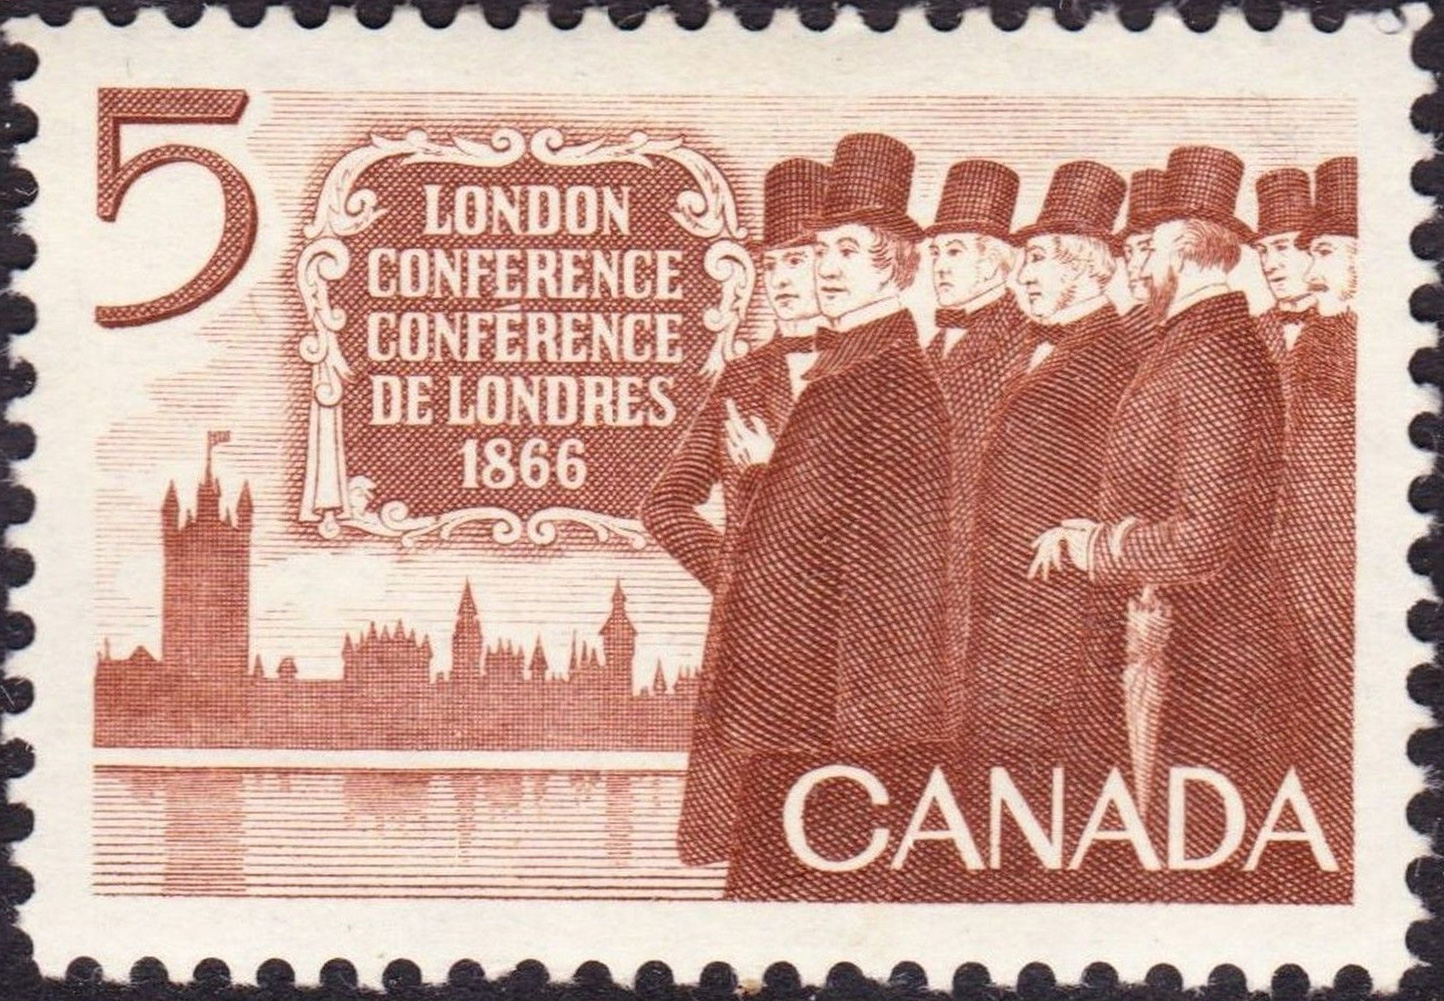 London Conference 1966 - Canadian stamp